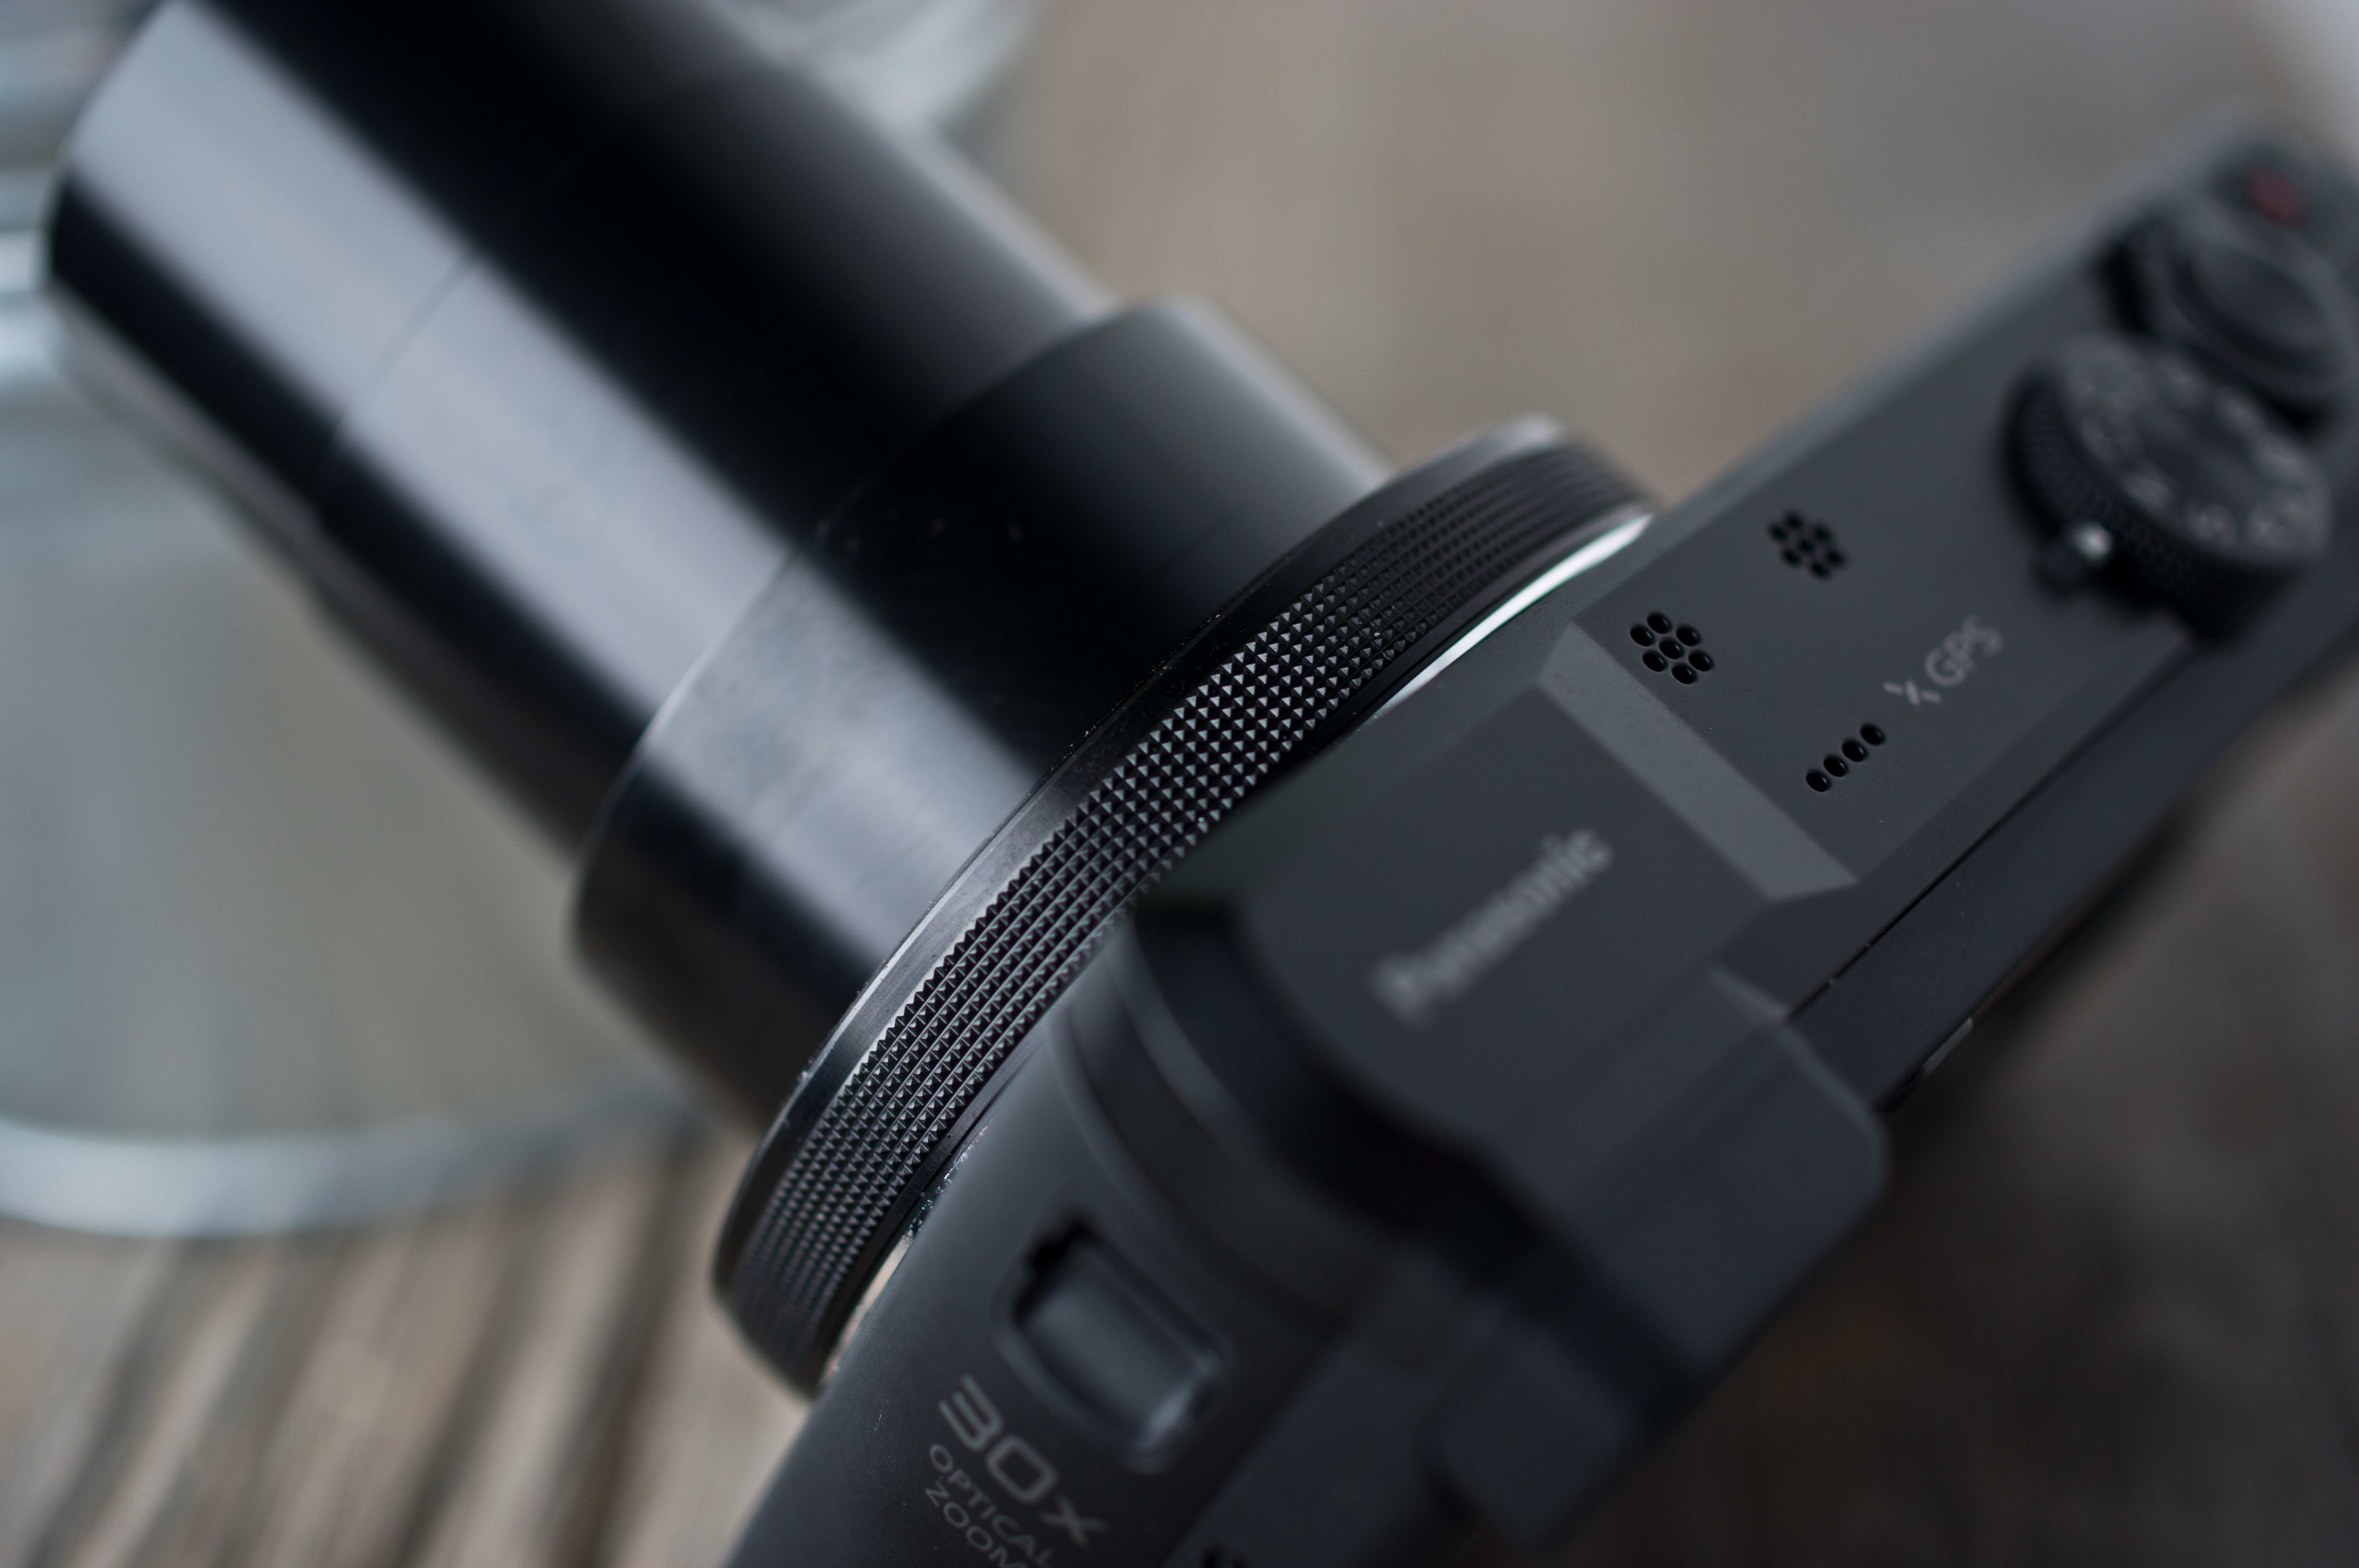 A picture of the Panasonic Lumix ZS40's control ring.